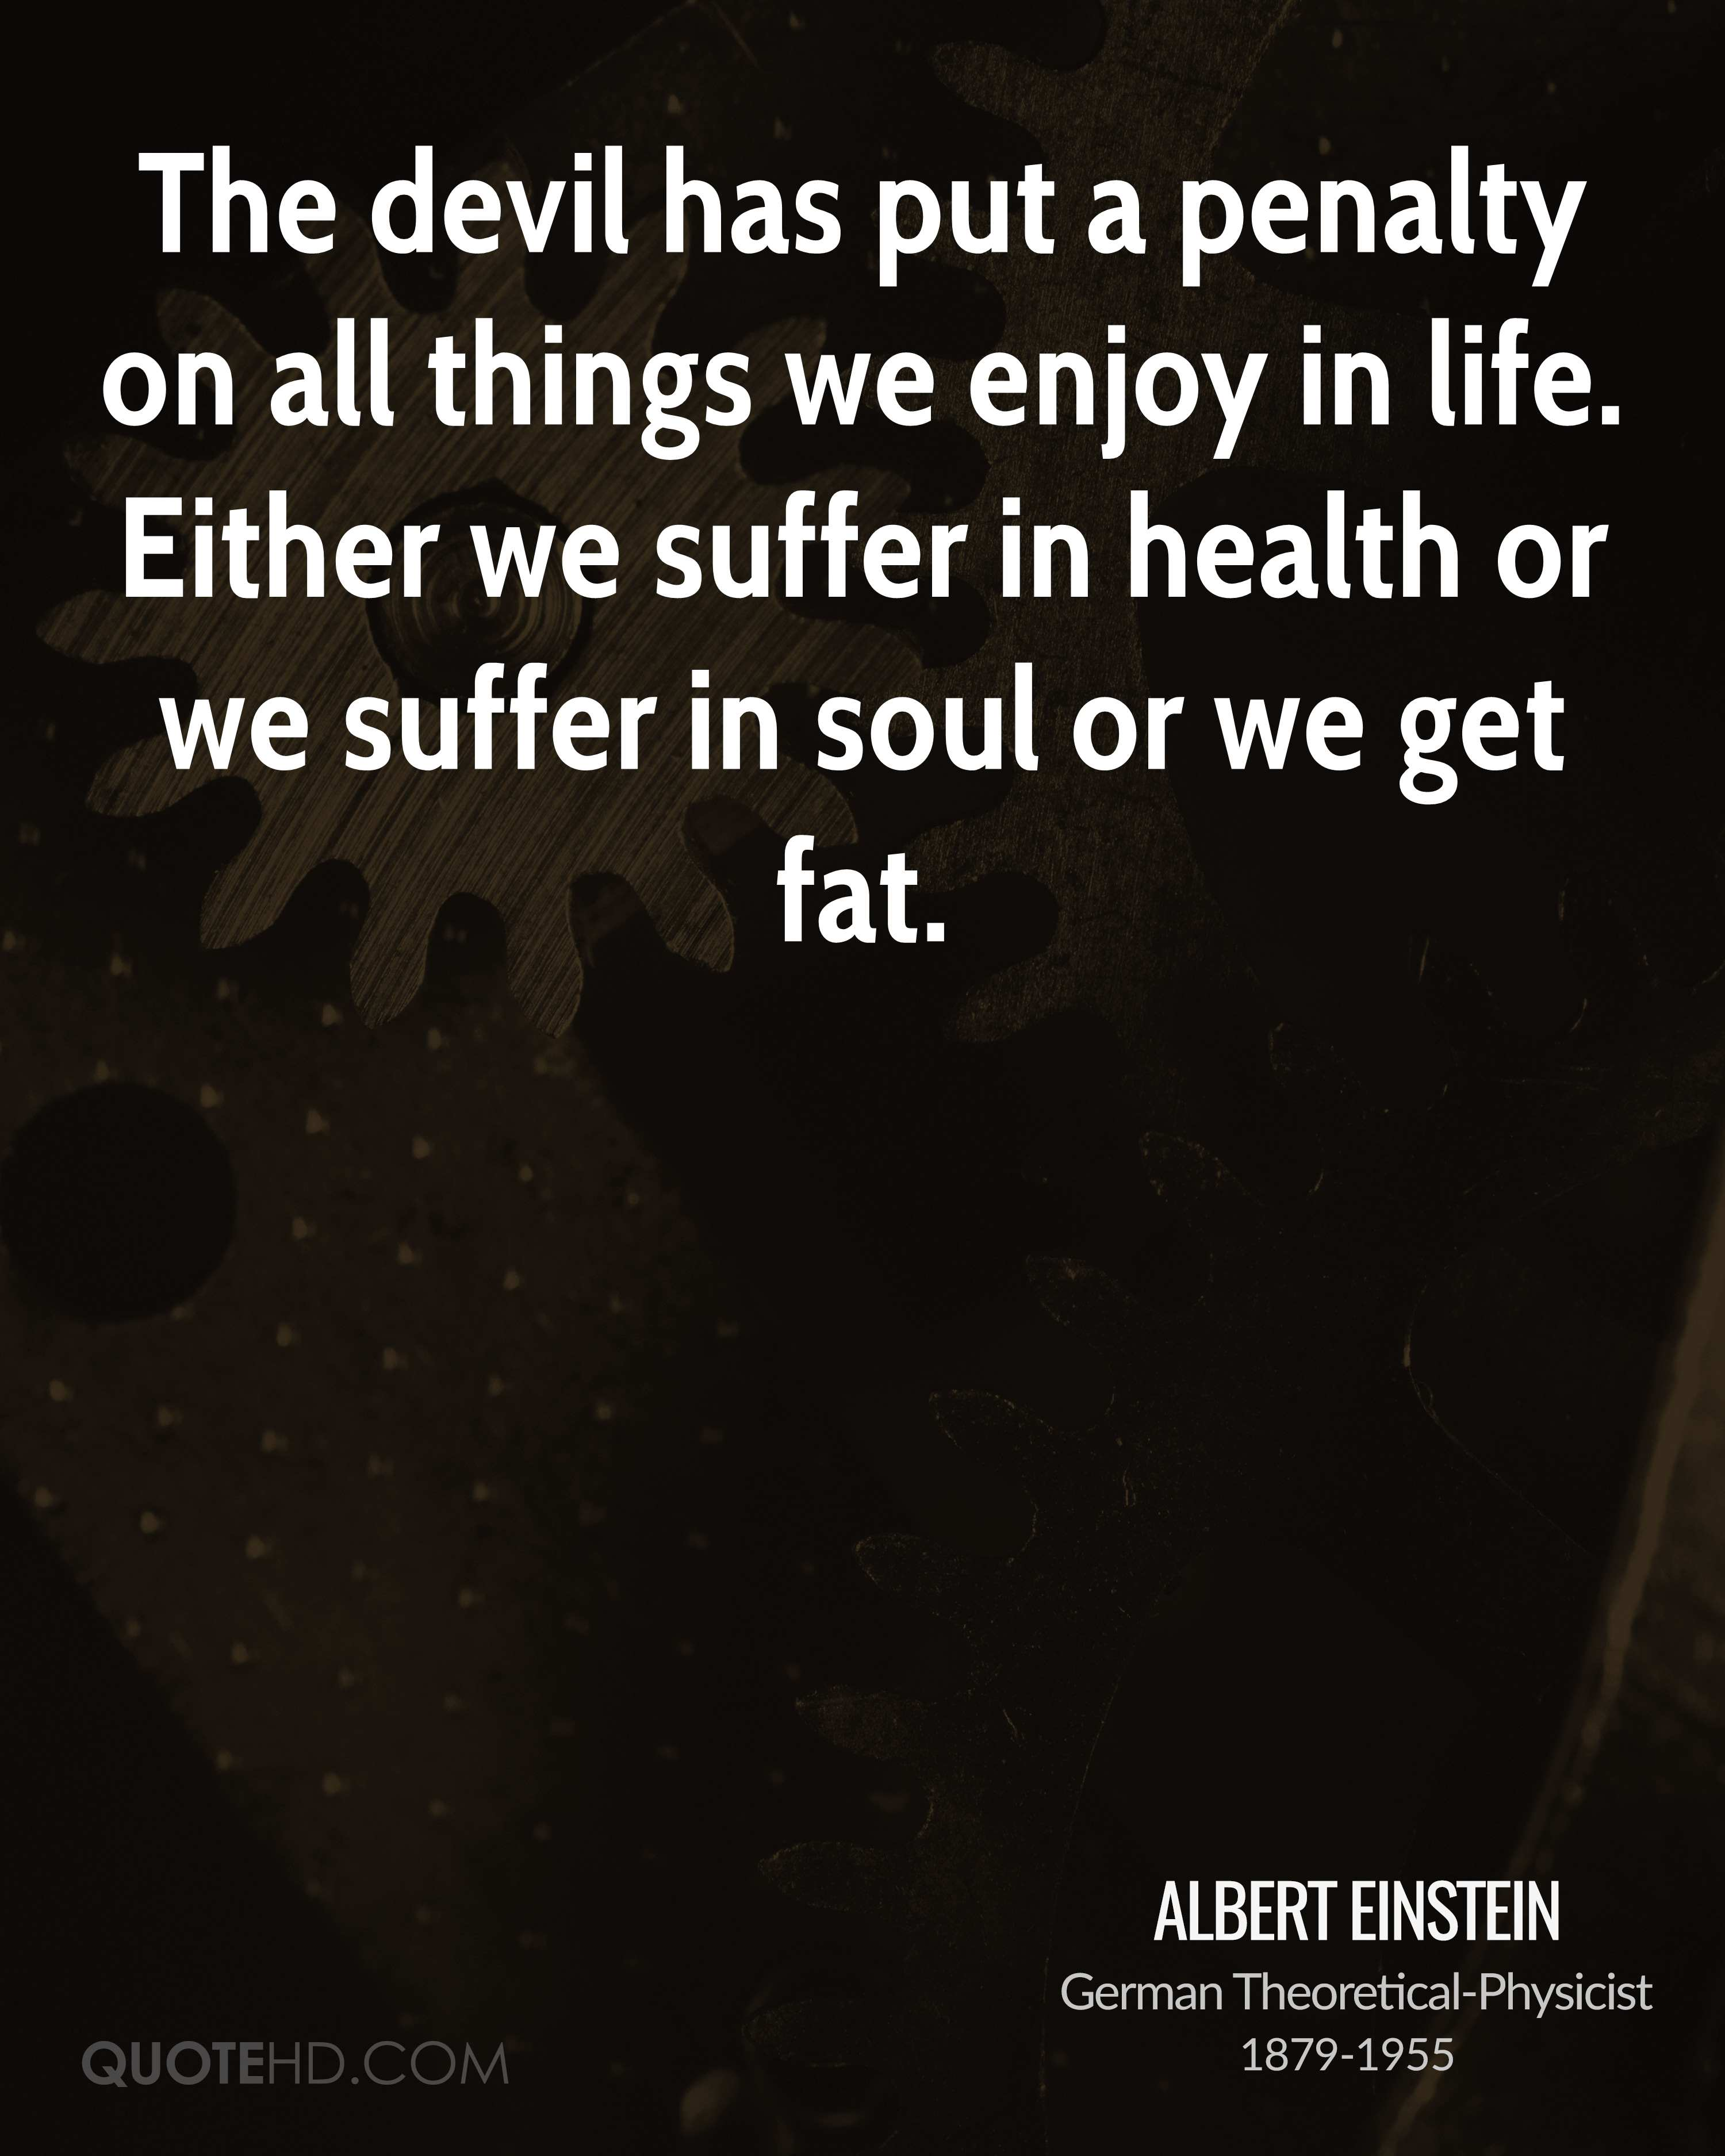 The devil has put a penalty on all things we enjoy in life. Either we suffer in health or we suffer in soul or we get fat.